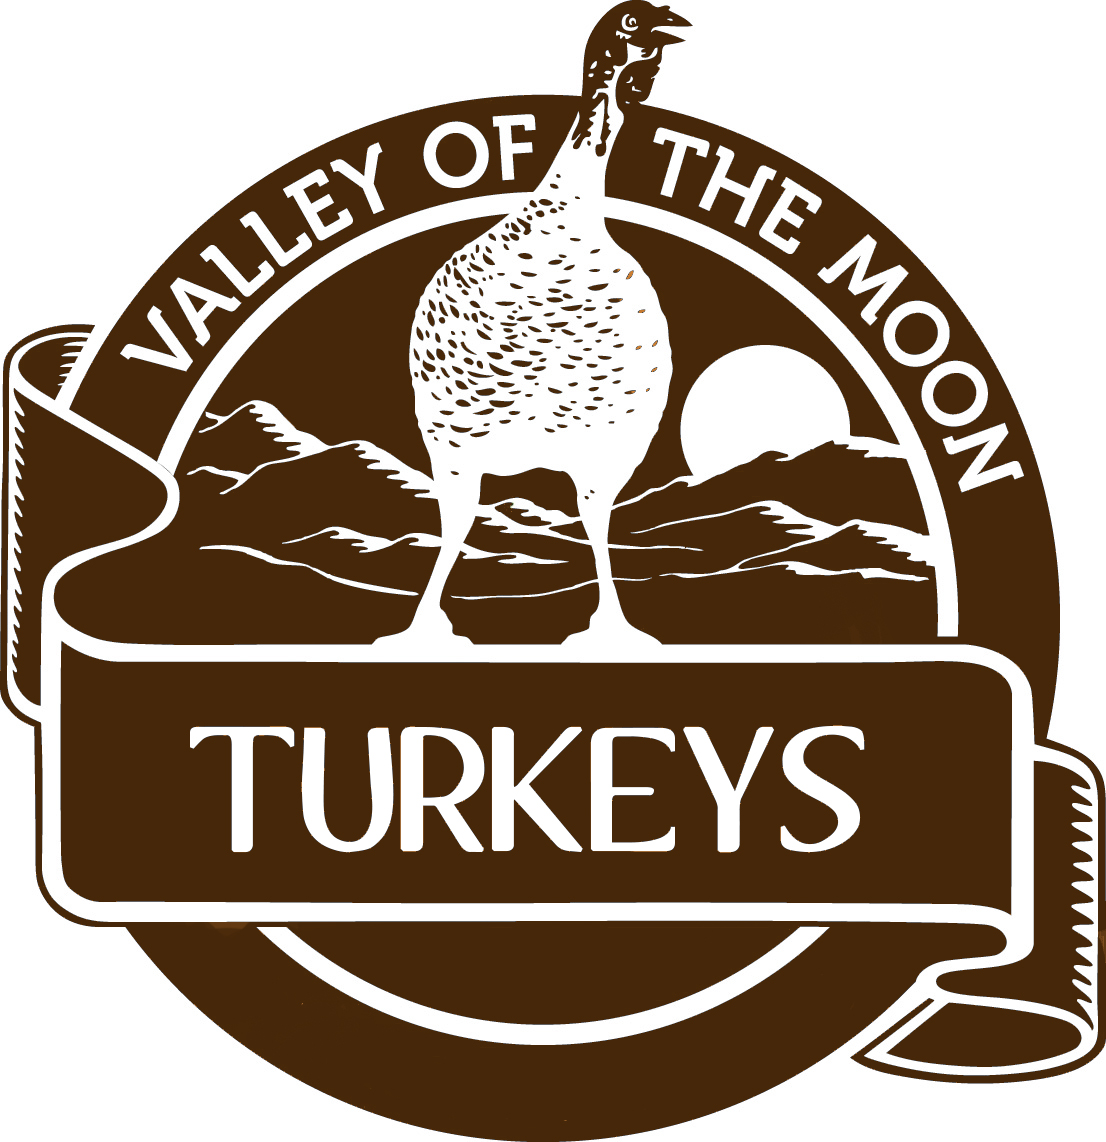 Valley of the Moon Turkeys